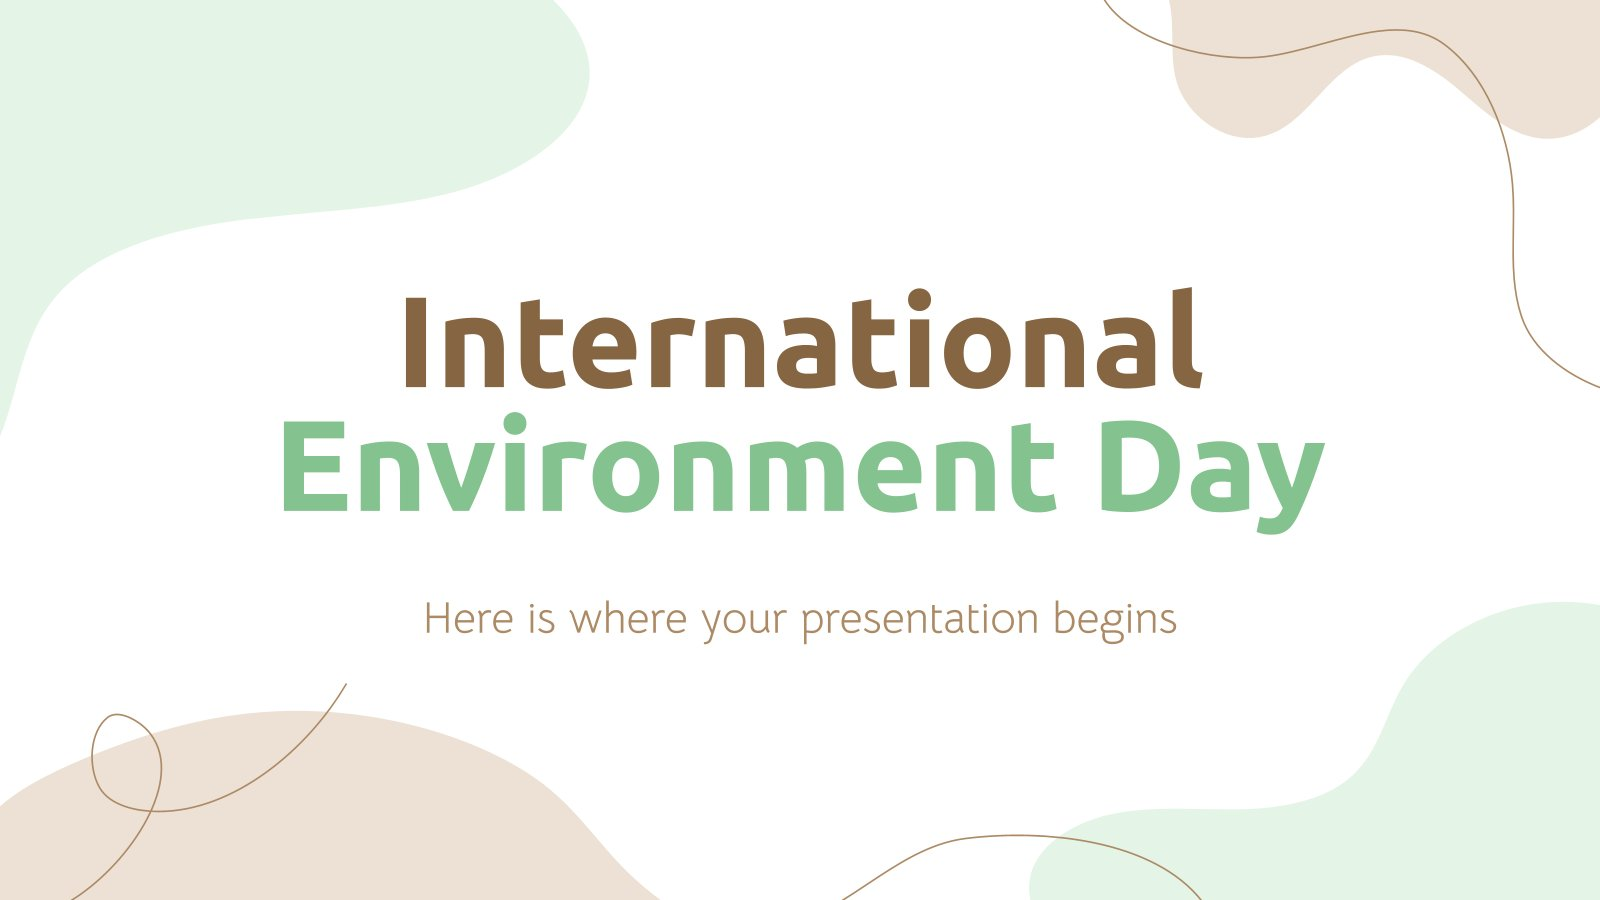 International Environment Day presentation template